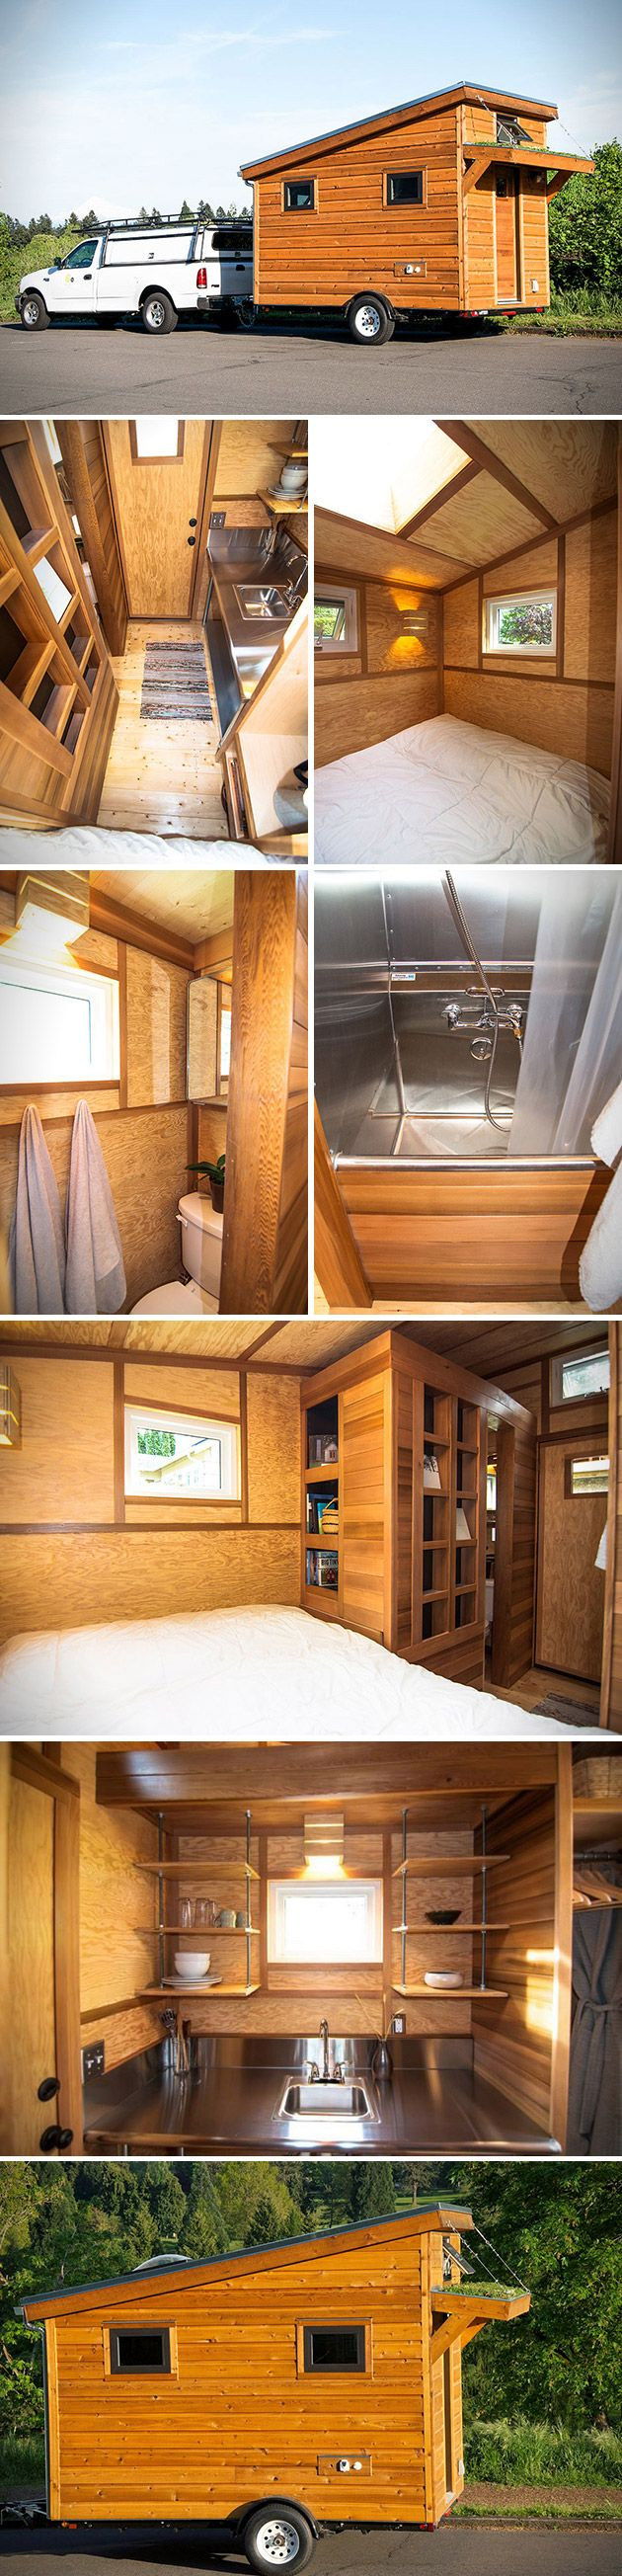 The team at Shelter Wise has something to say about that, as they roll out their affordable Salsa Box tiny home on wheels for all the adventurers out there.   Whether you're looking to set up a nice home away from home, or rebuild your life completely off the grid, this is the solution for you. The Portland based company has introduced energy efficient houses that can easily be attached to any trailer hook.